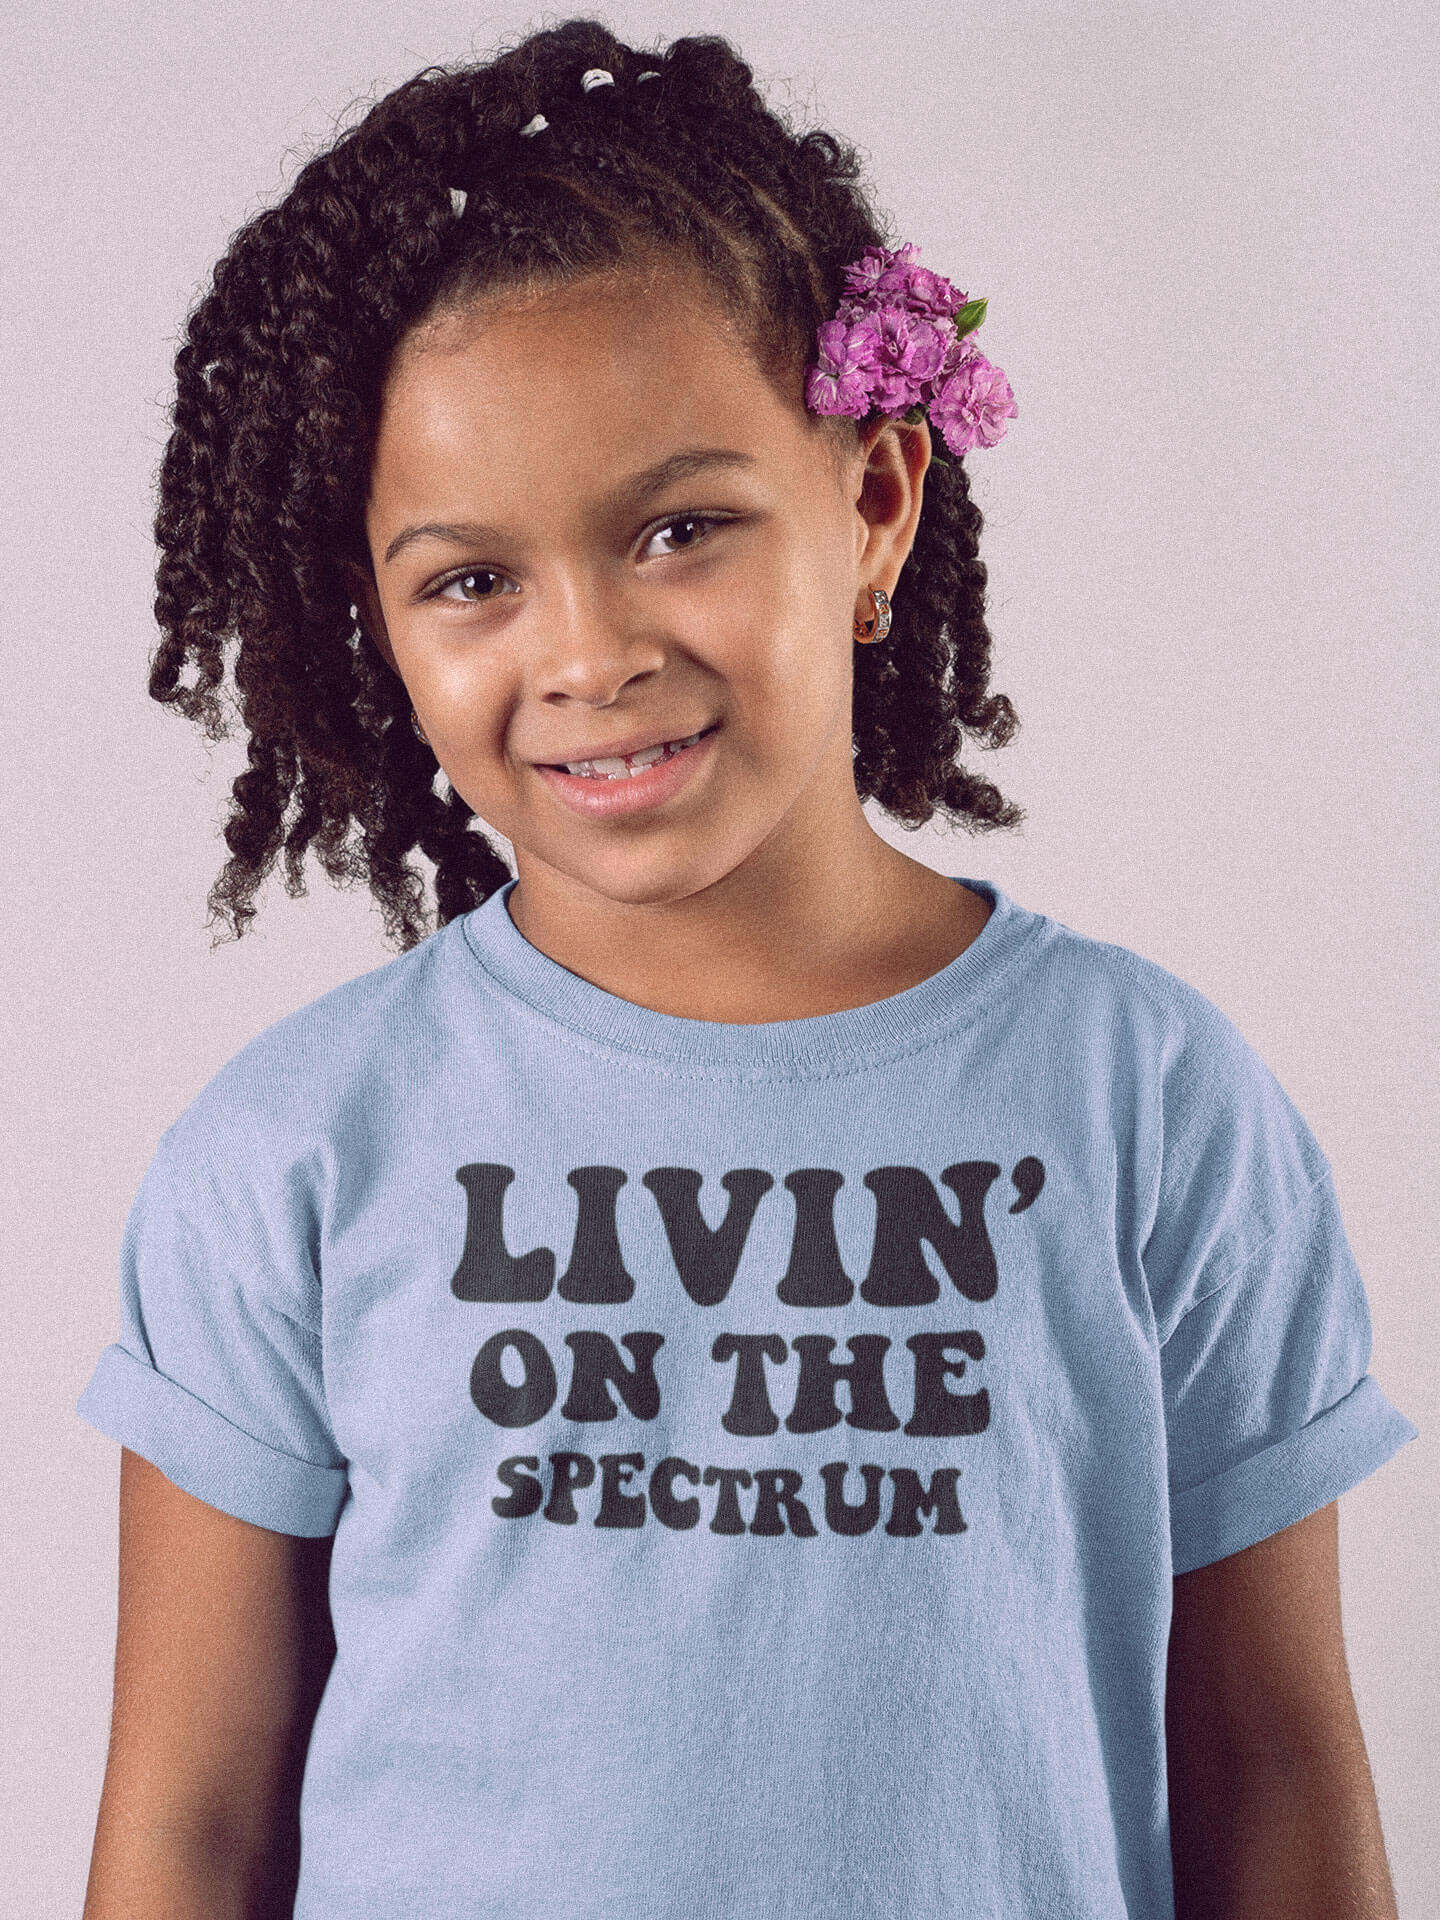 girl wearing livin on the spectrum autism blue t-shirt smiling